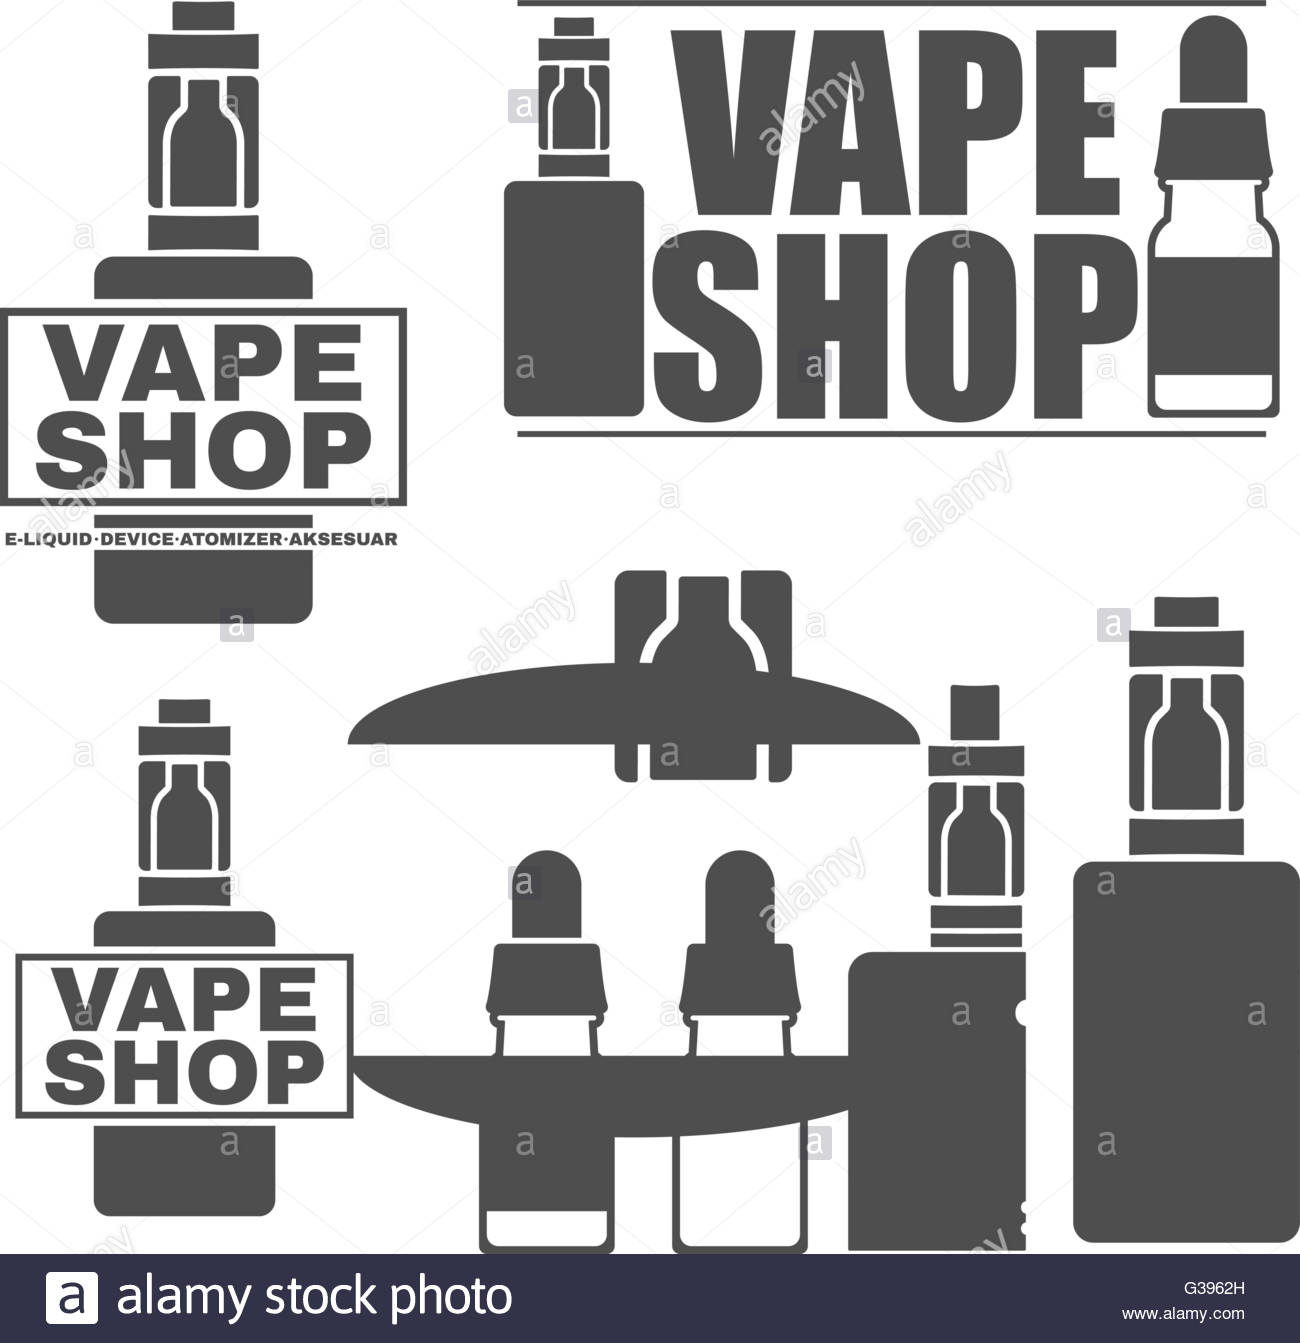 logos of electronic cigarettes Stock Vector